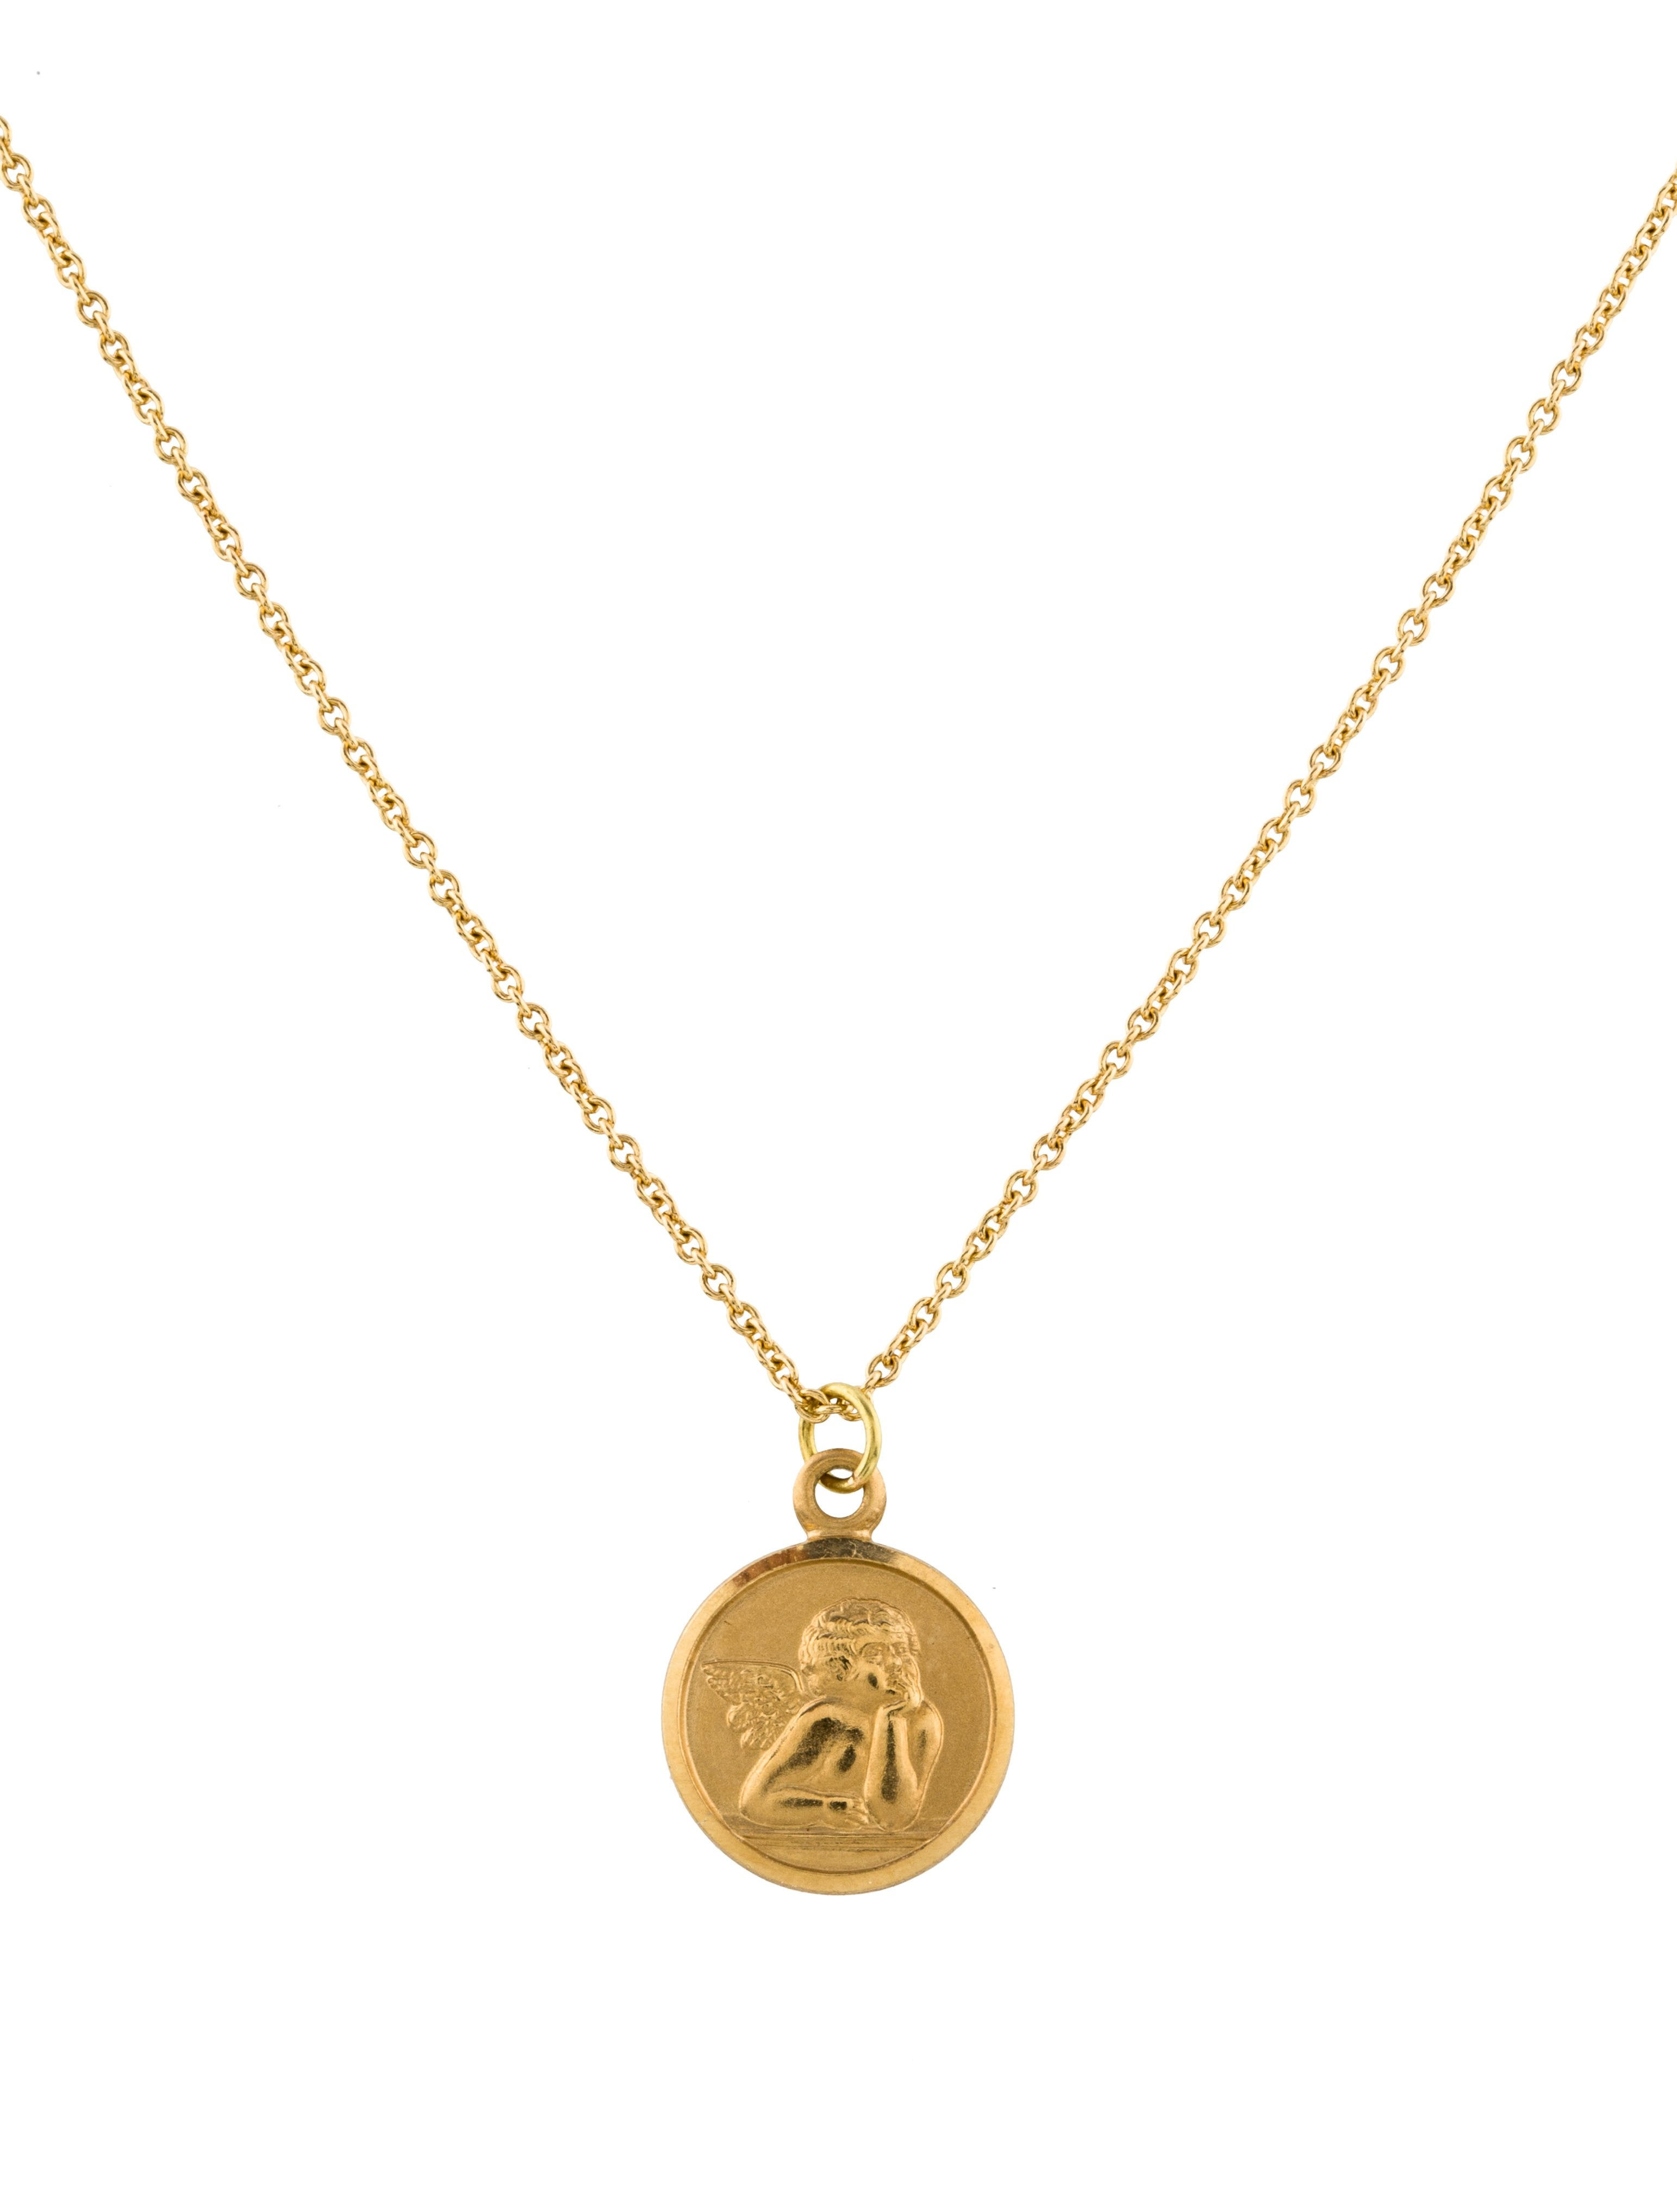 Dolce gabbana 18k angel pendant necklace necklaces dag88474 18k angel pendant necklace aloadofball Image collections